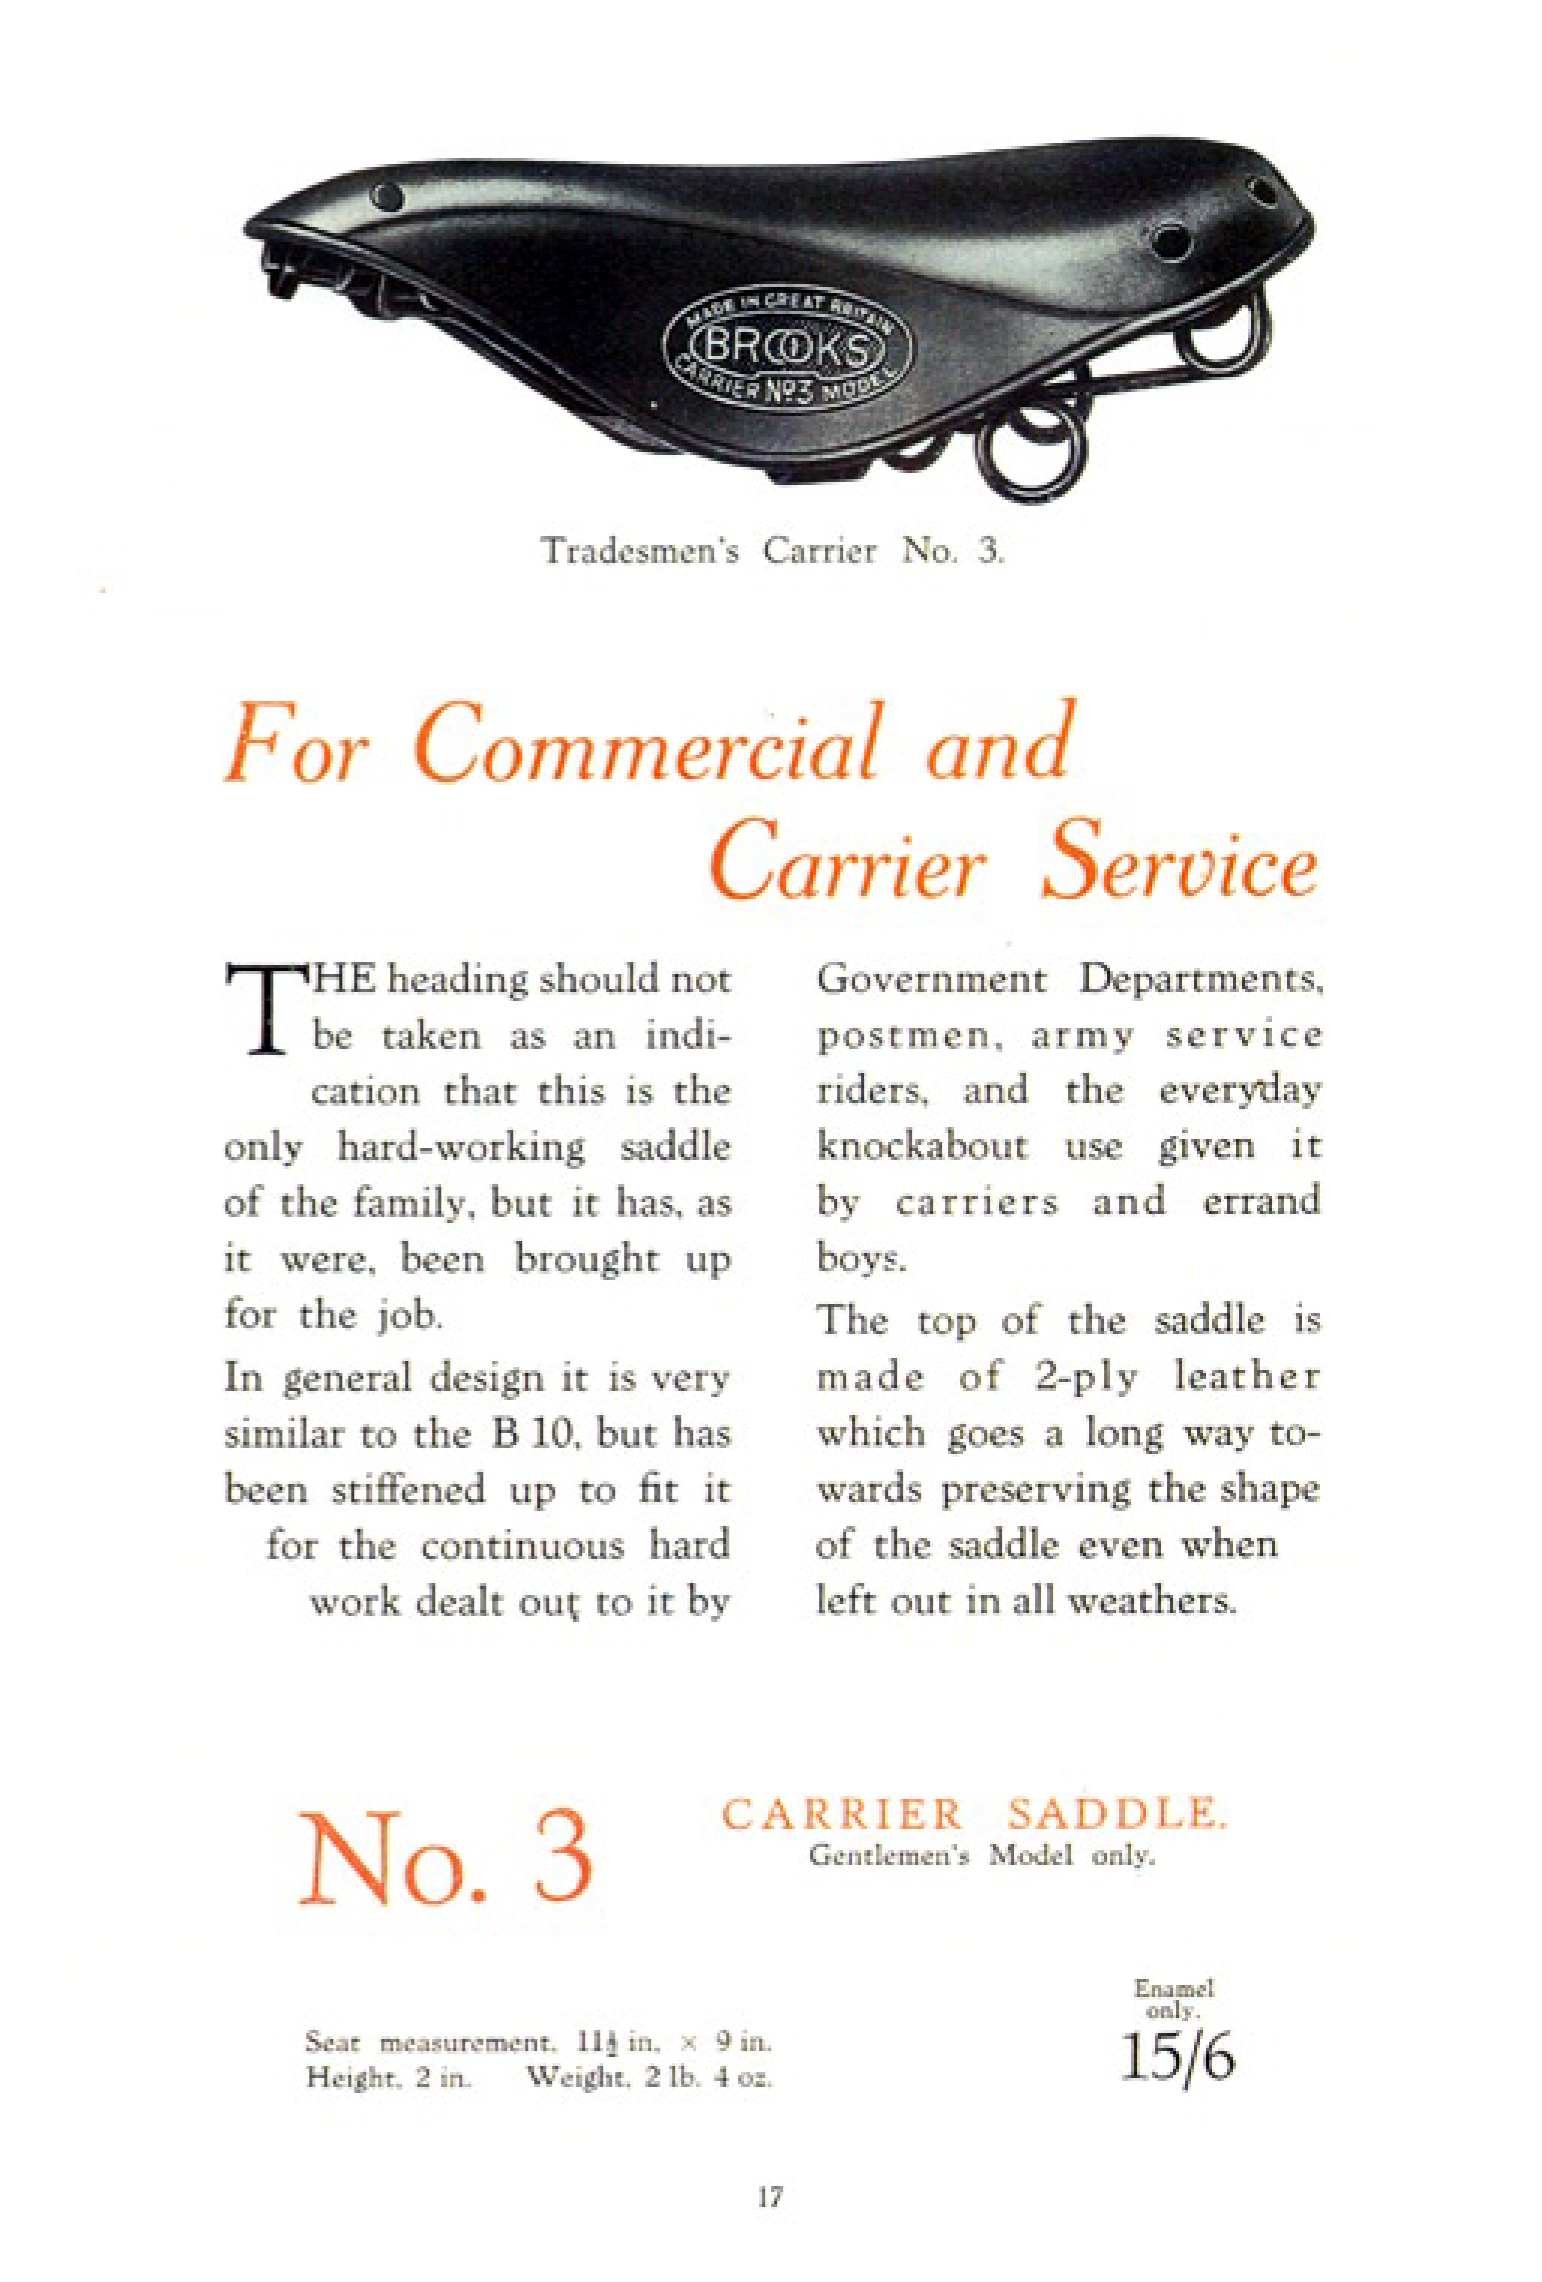 ebykr-brooks-no-3-commercial-carrier-service-saddle-1927-catalog-page-17